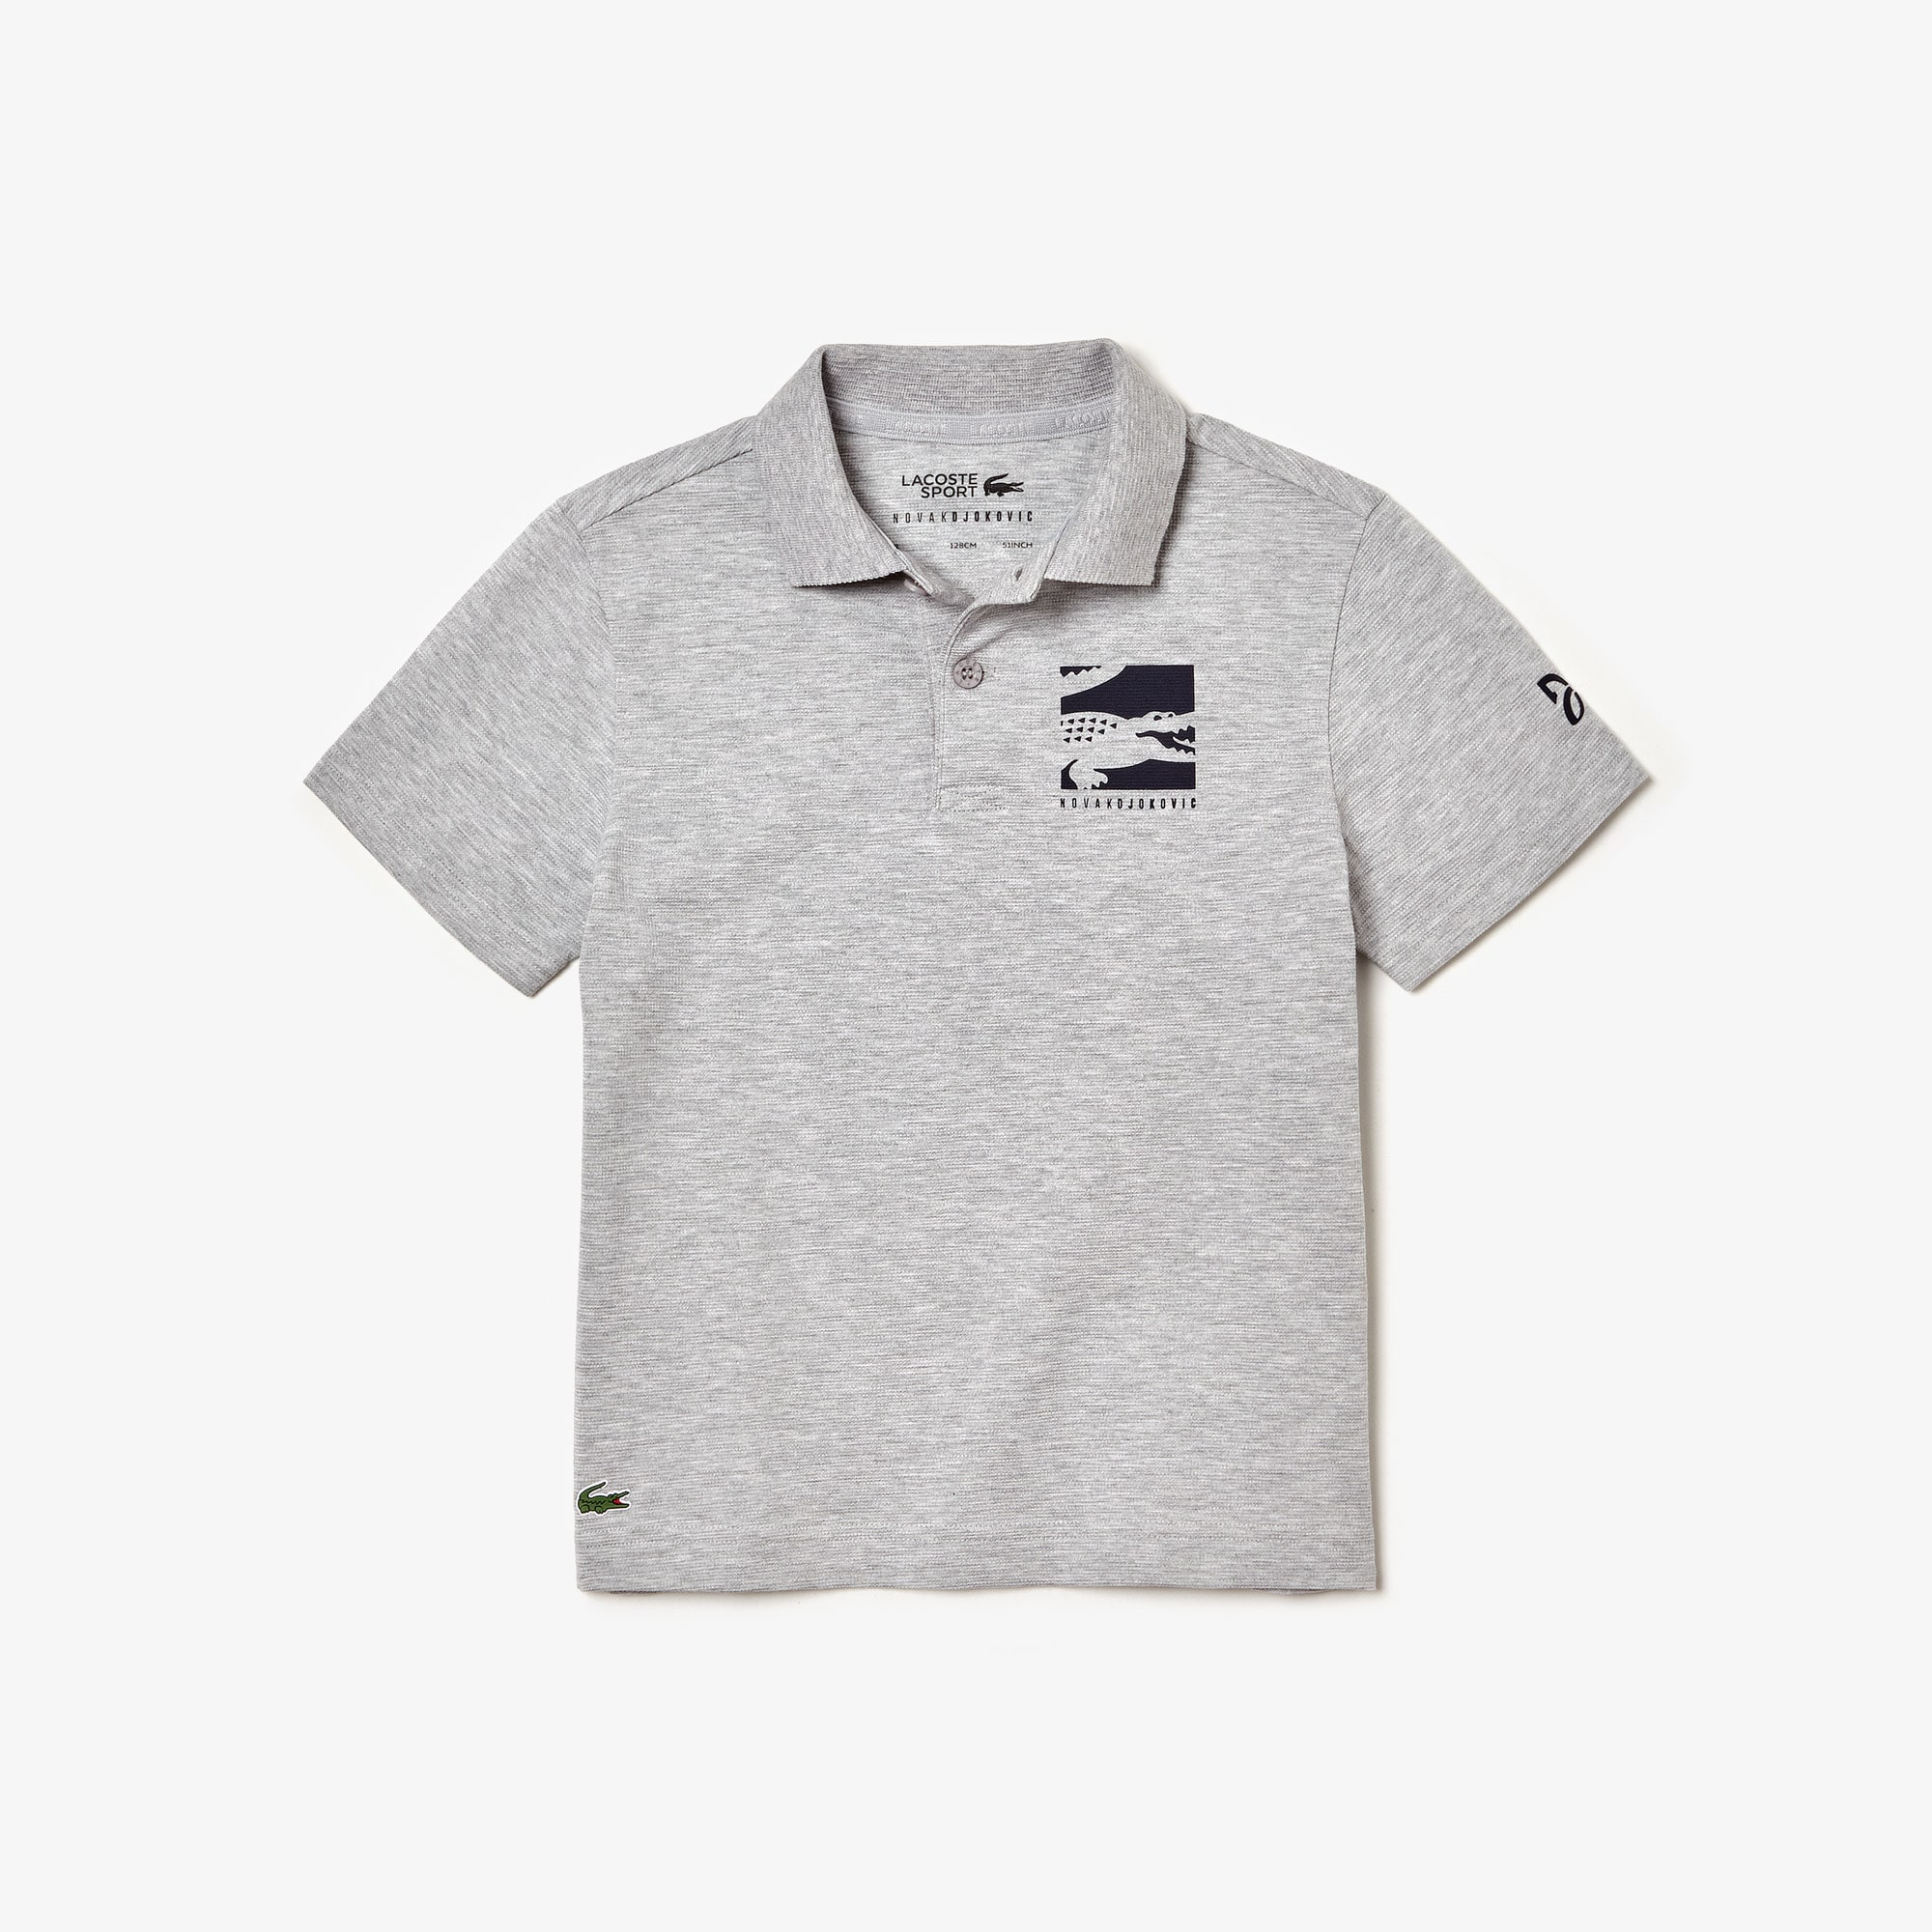 Boys' Lacoste SPORT x Novak Djokovic Badge Cotton Polo Shirt